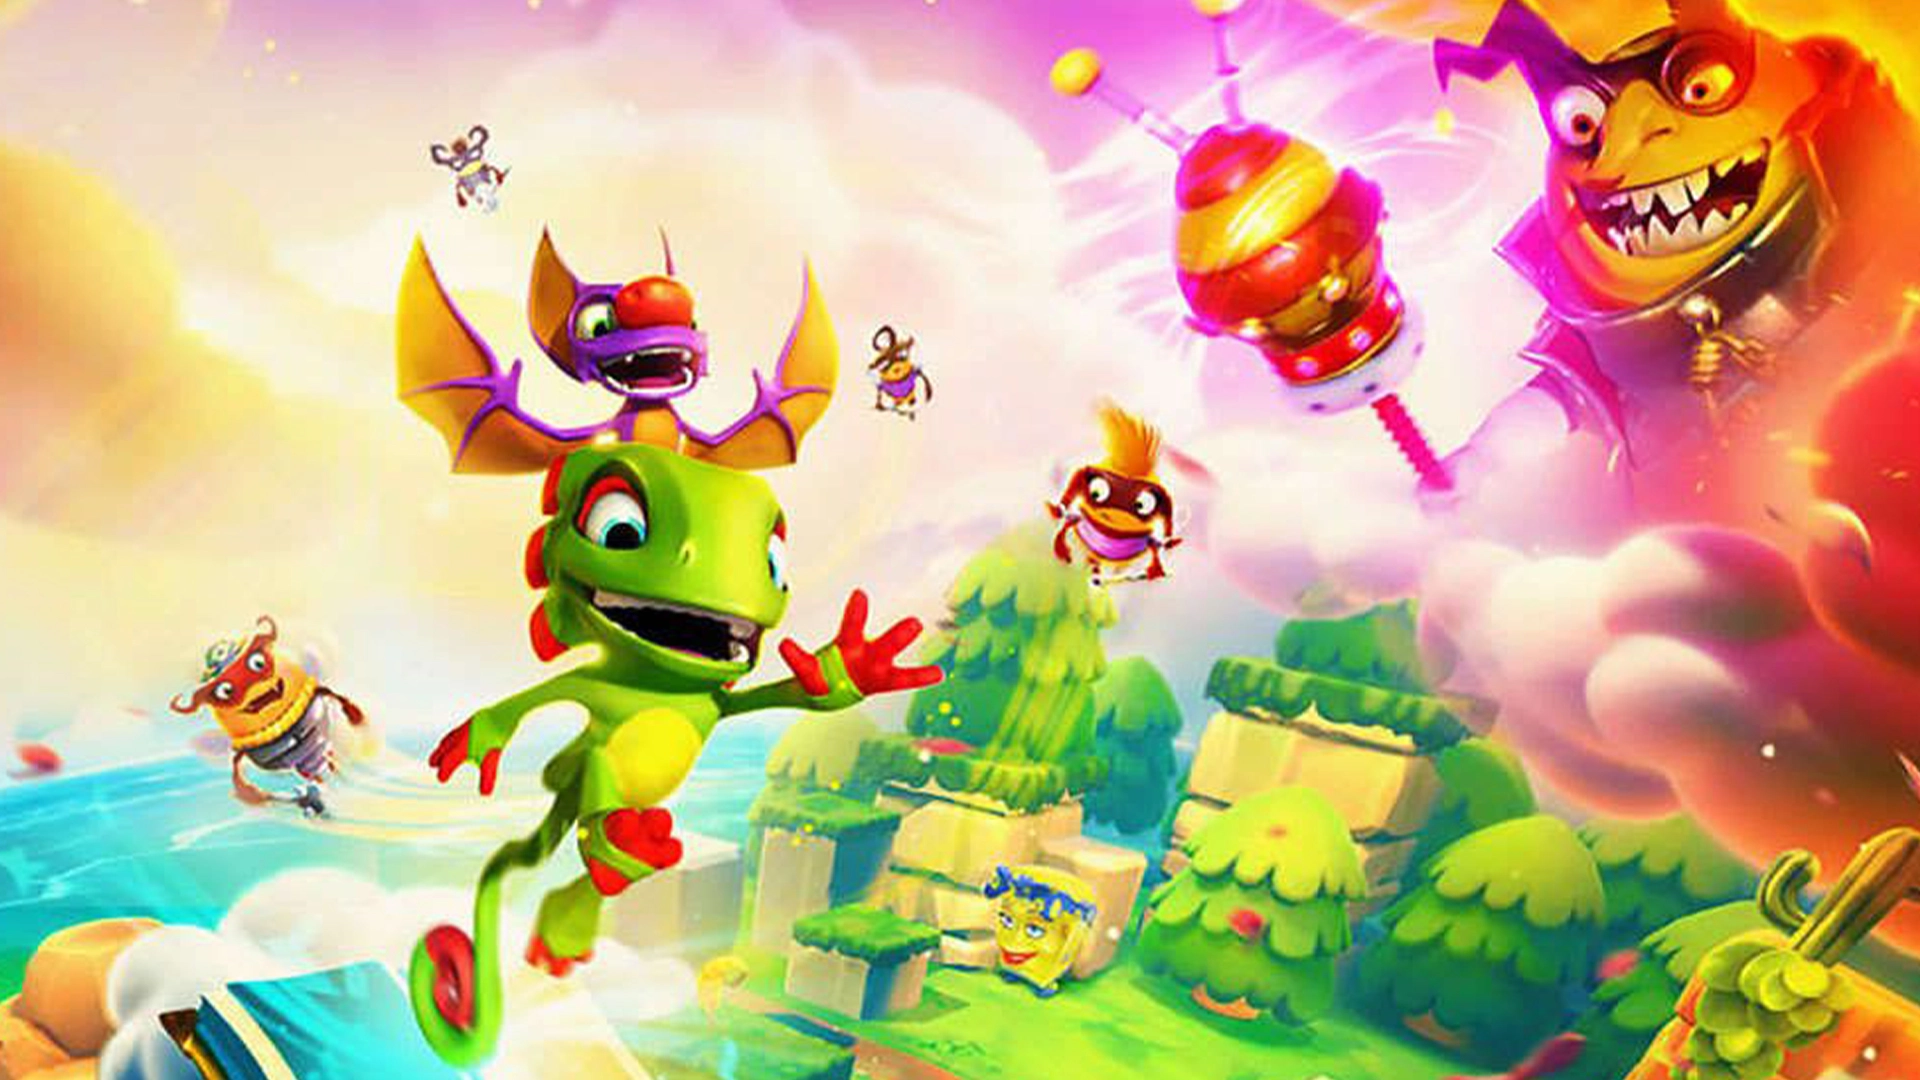 Yooka laylee and the impossible lair demo